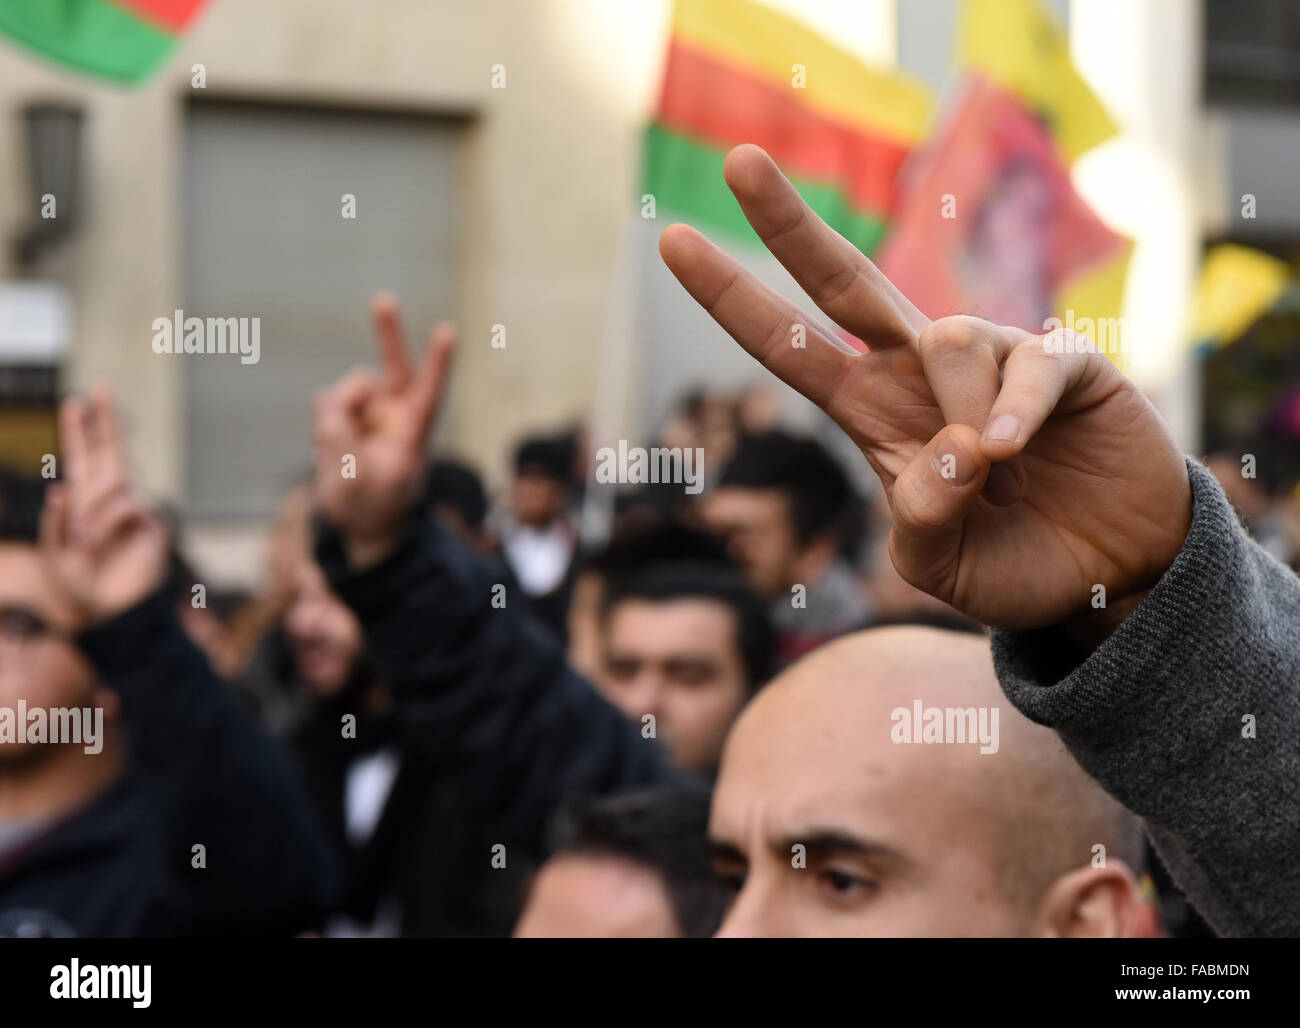 Duesseldorf, Germany. 26th December, 2015. Kurdish people with flags and banners have gathered to demonstrate in - Stock Image